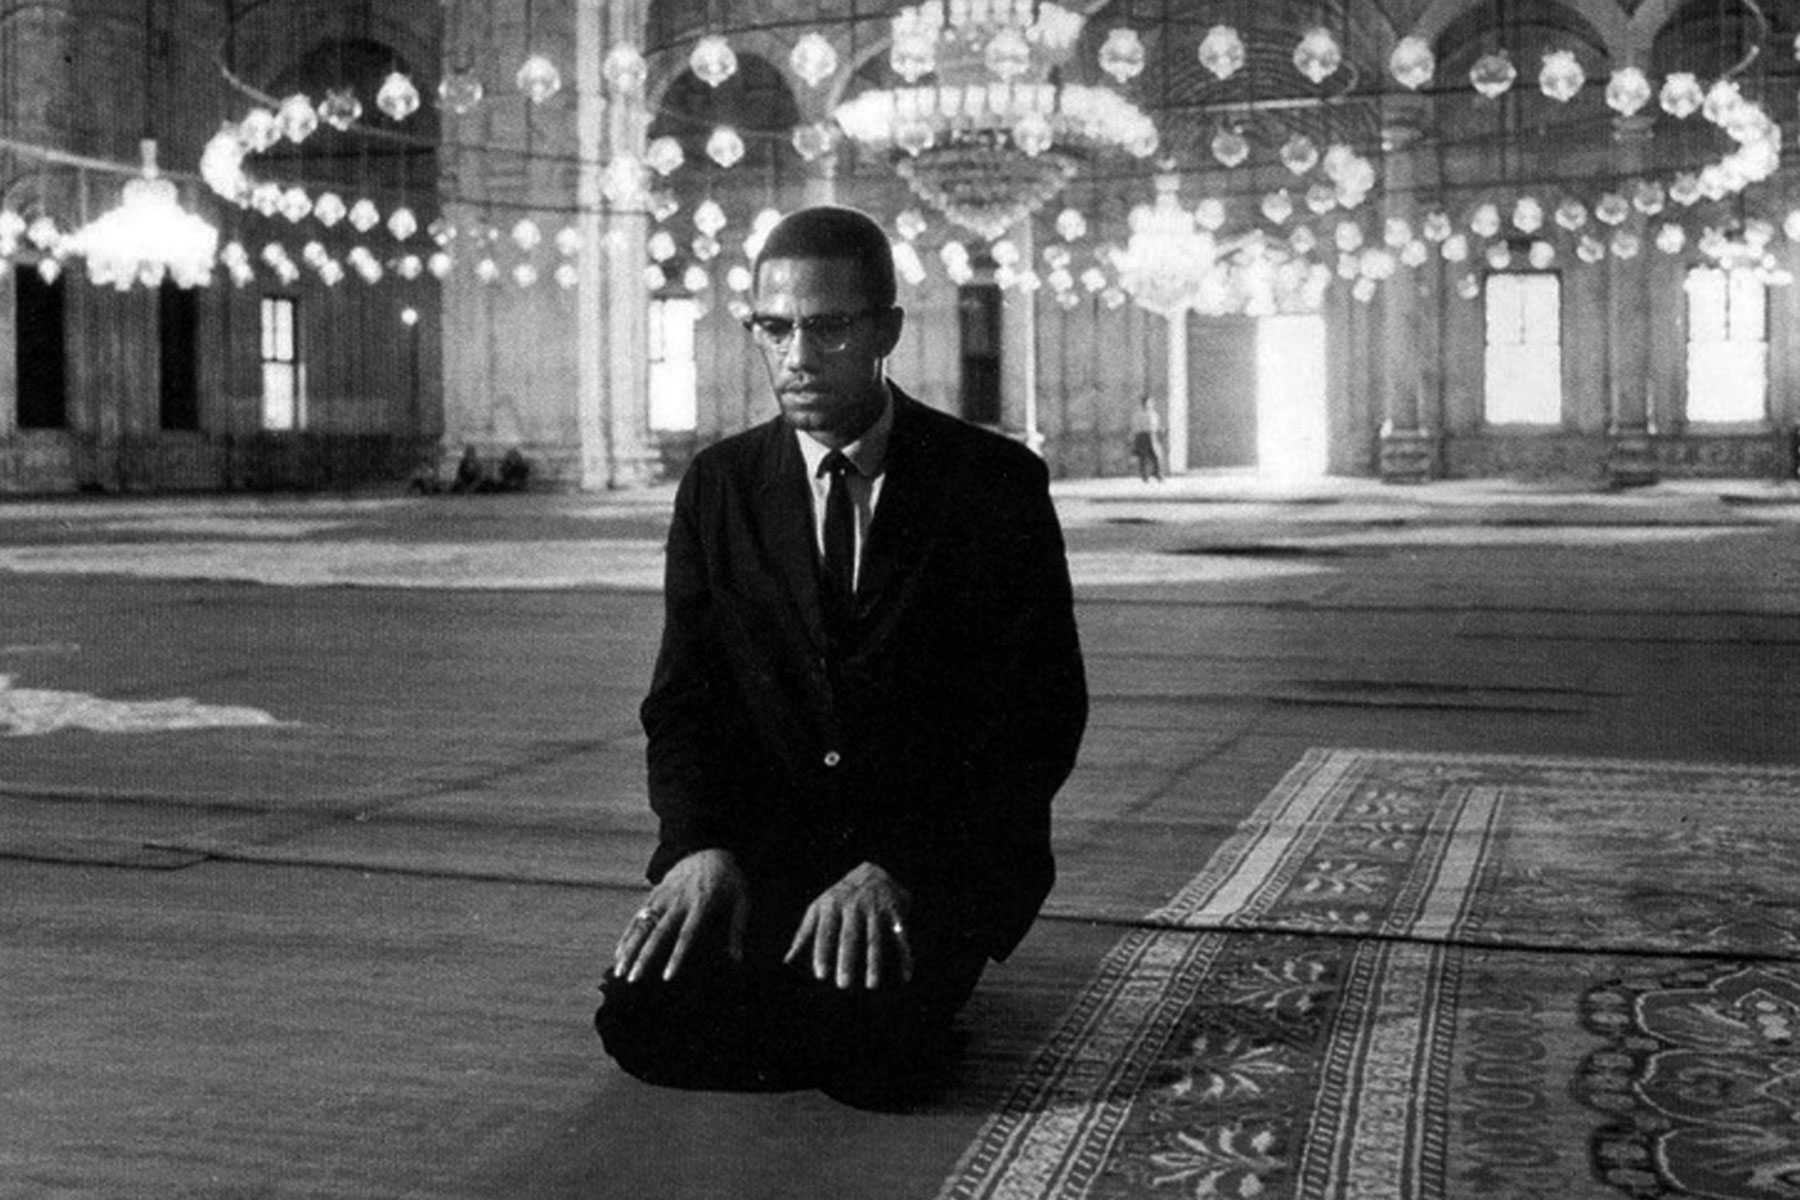 Malcolm X kneels on the ground while wearing a black suit during his 1964 pilgrimage to Mecca